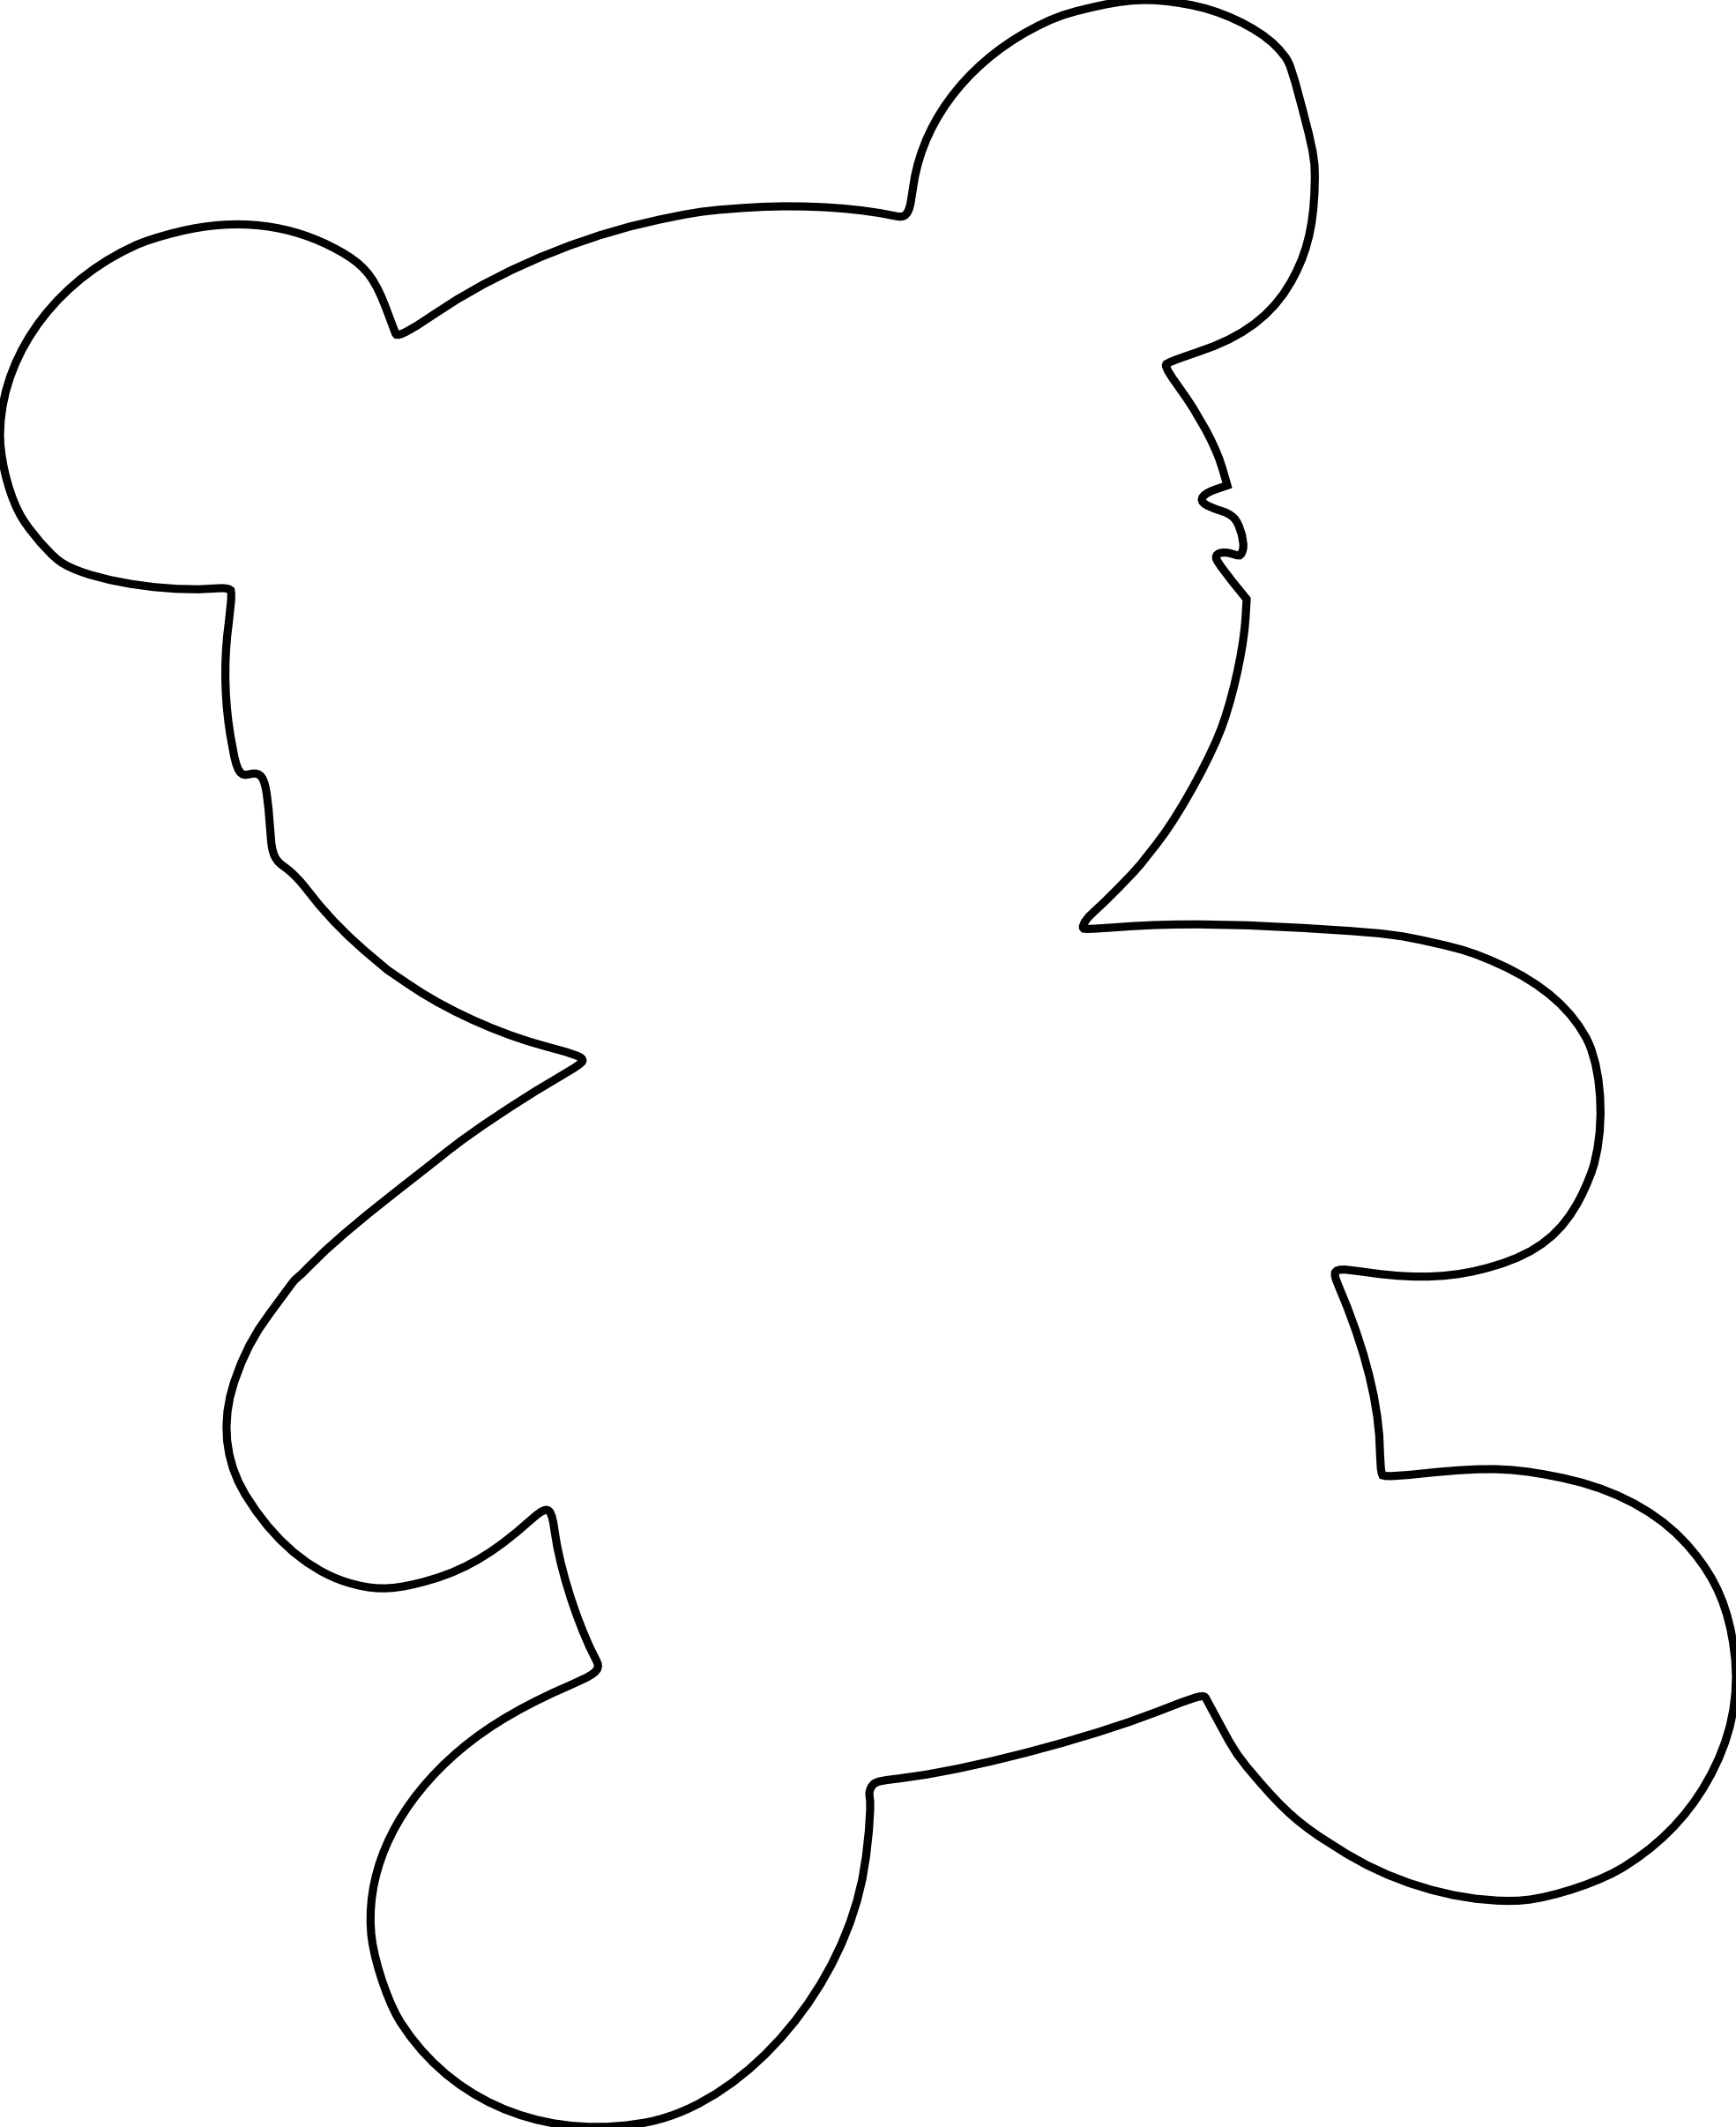 Free coloring pages teddy bears - Teddy Bear Coloring Pages Free Free Printable Coloring Pages